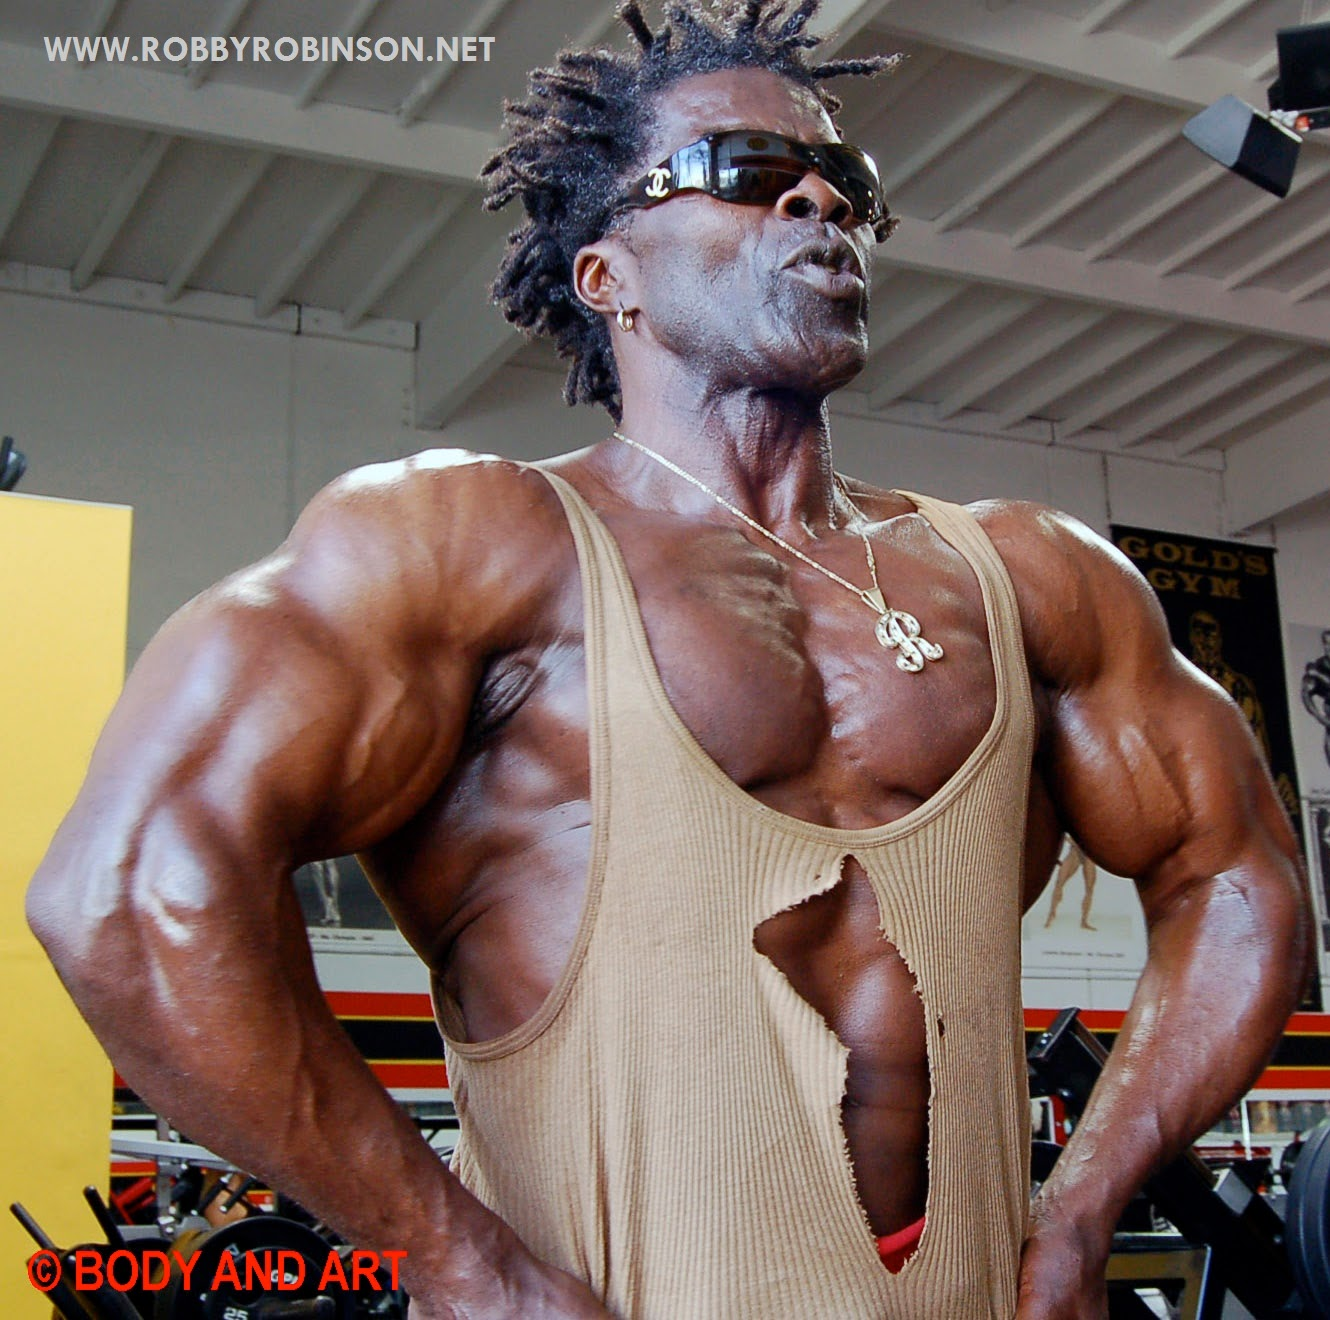 Robby Robinson - Front lat spread - posing at Gold's Gym Venice ● www.robbyrobinson.net//anabolic-pack.php ●